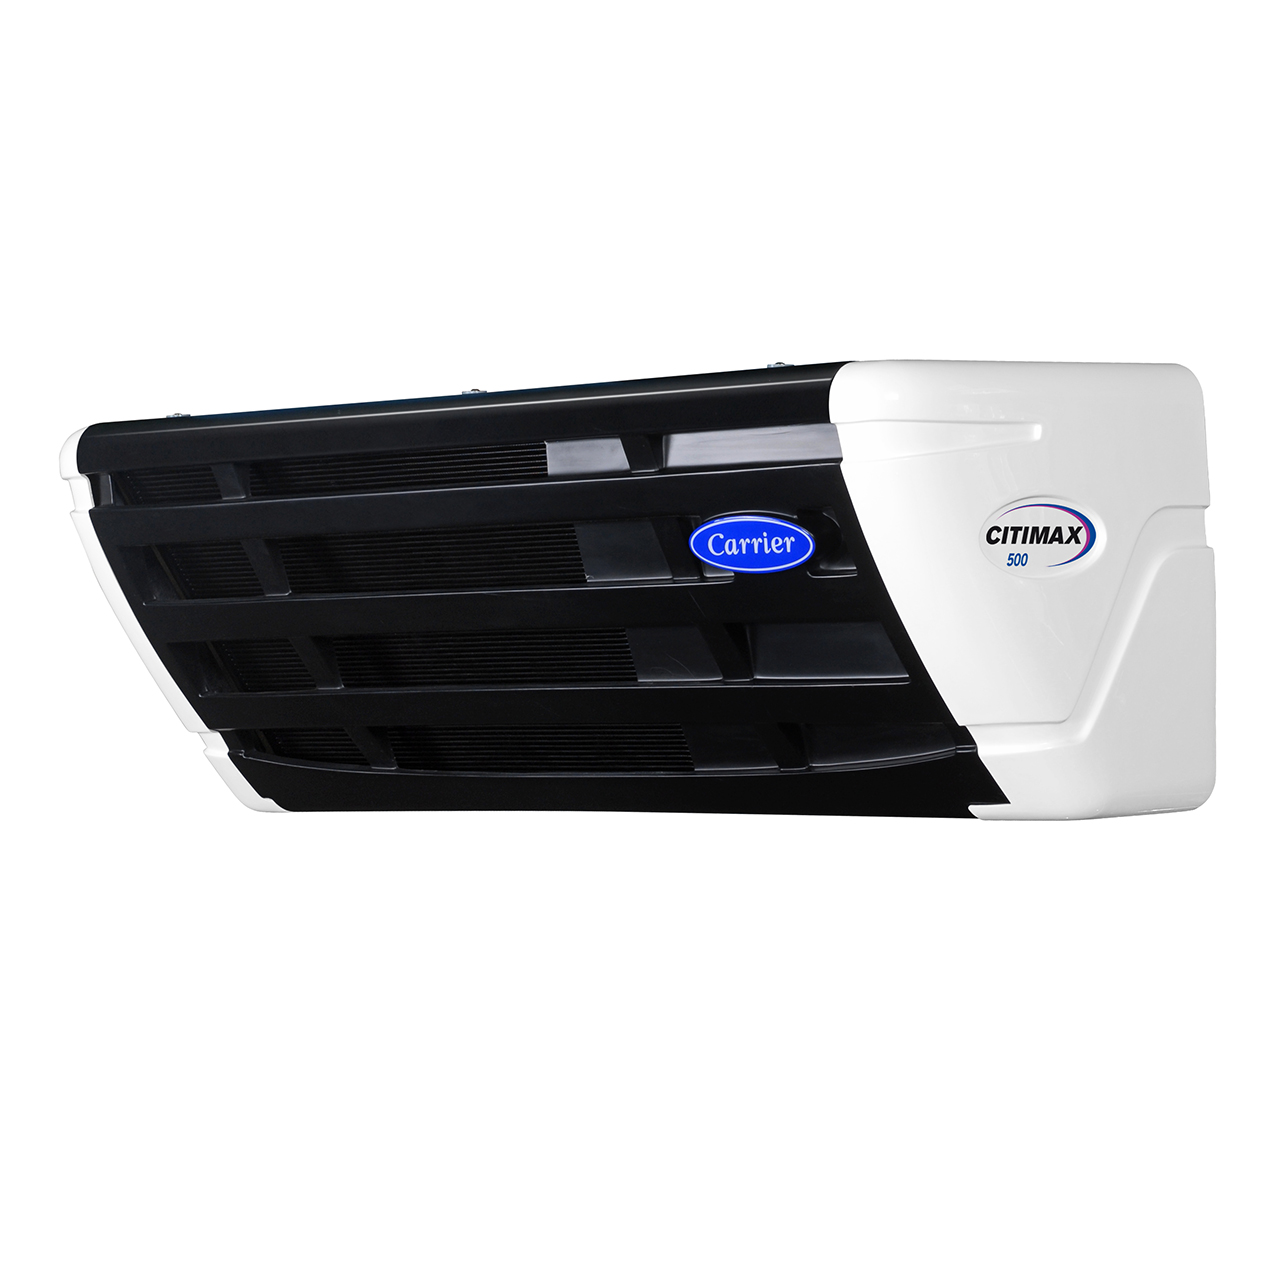 carrier-citimax-500-side